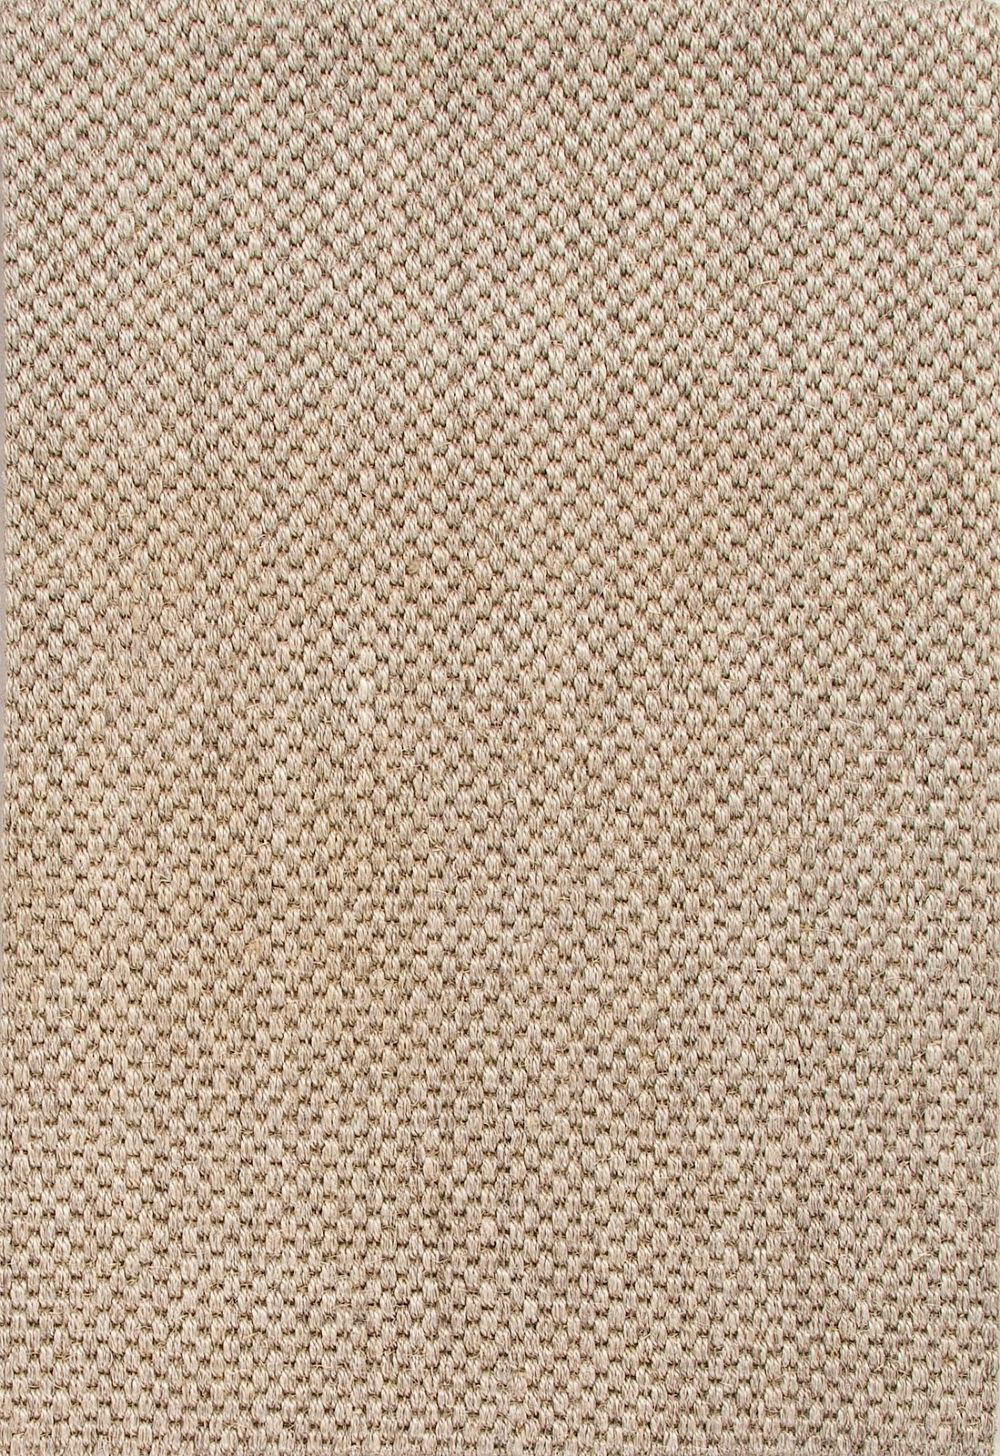 jaipur naturals sanibel natural fiber area rug collection